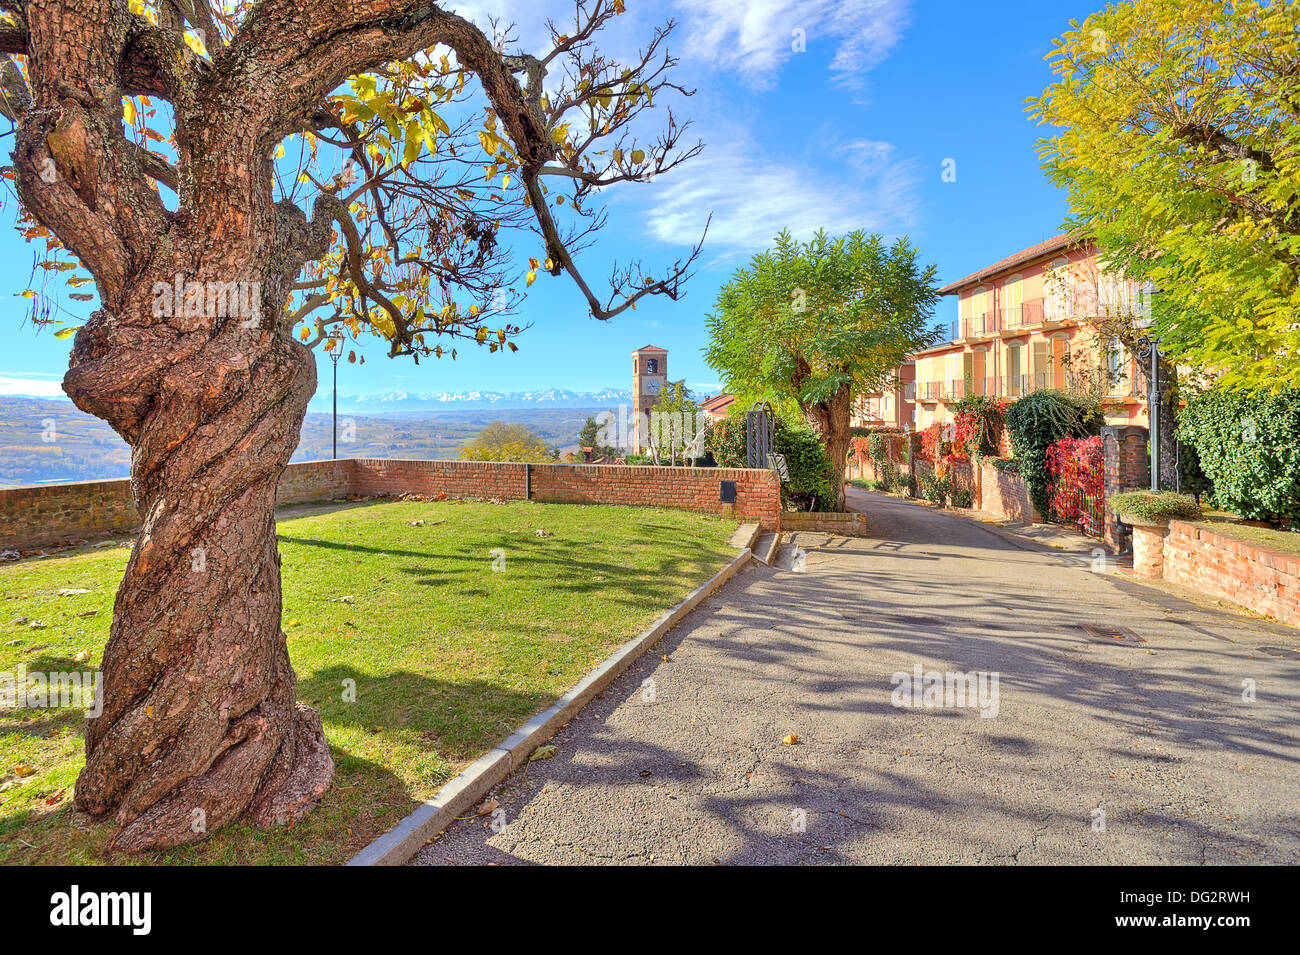 Tree with yellow leaves and old trunk grows in the street in small town of Santa Vittoria D'Alba in Piedmont, Northern Italy. - Stock Image